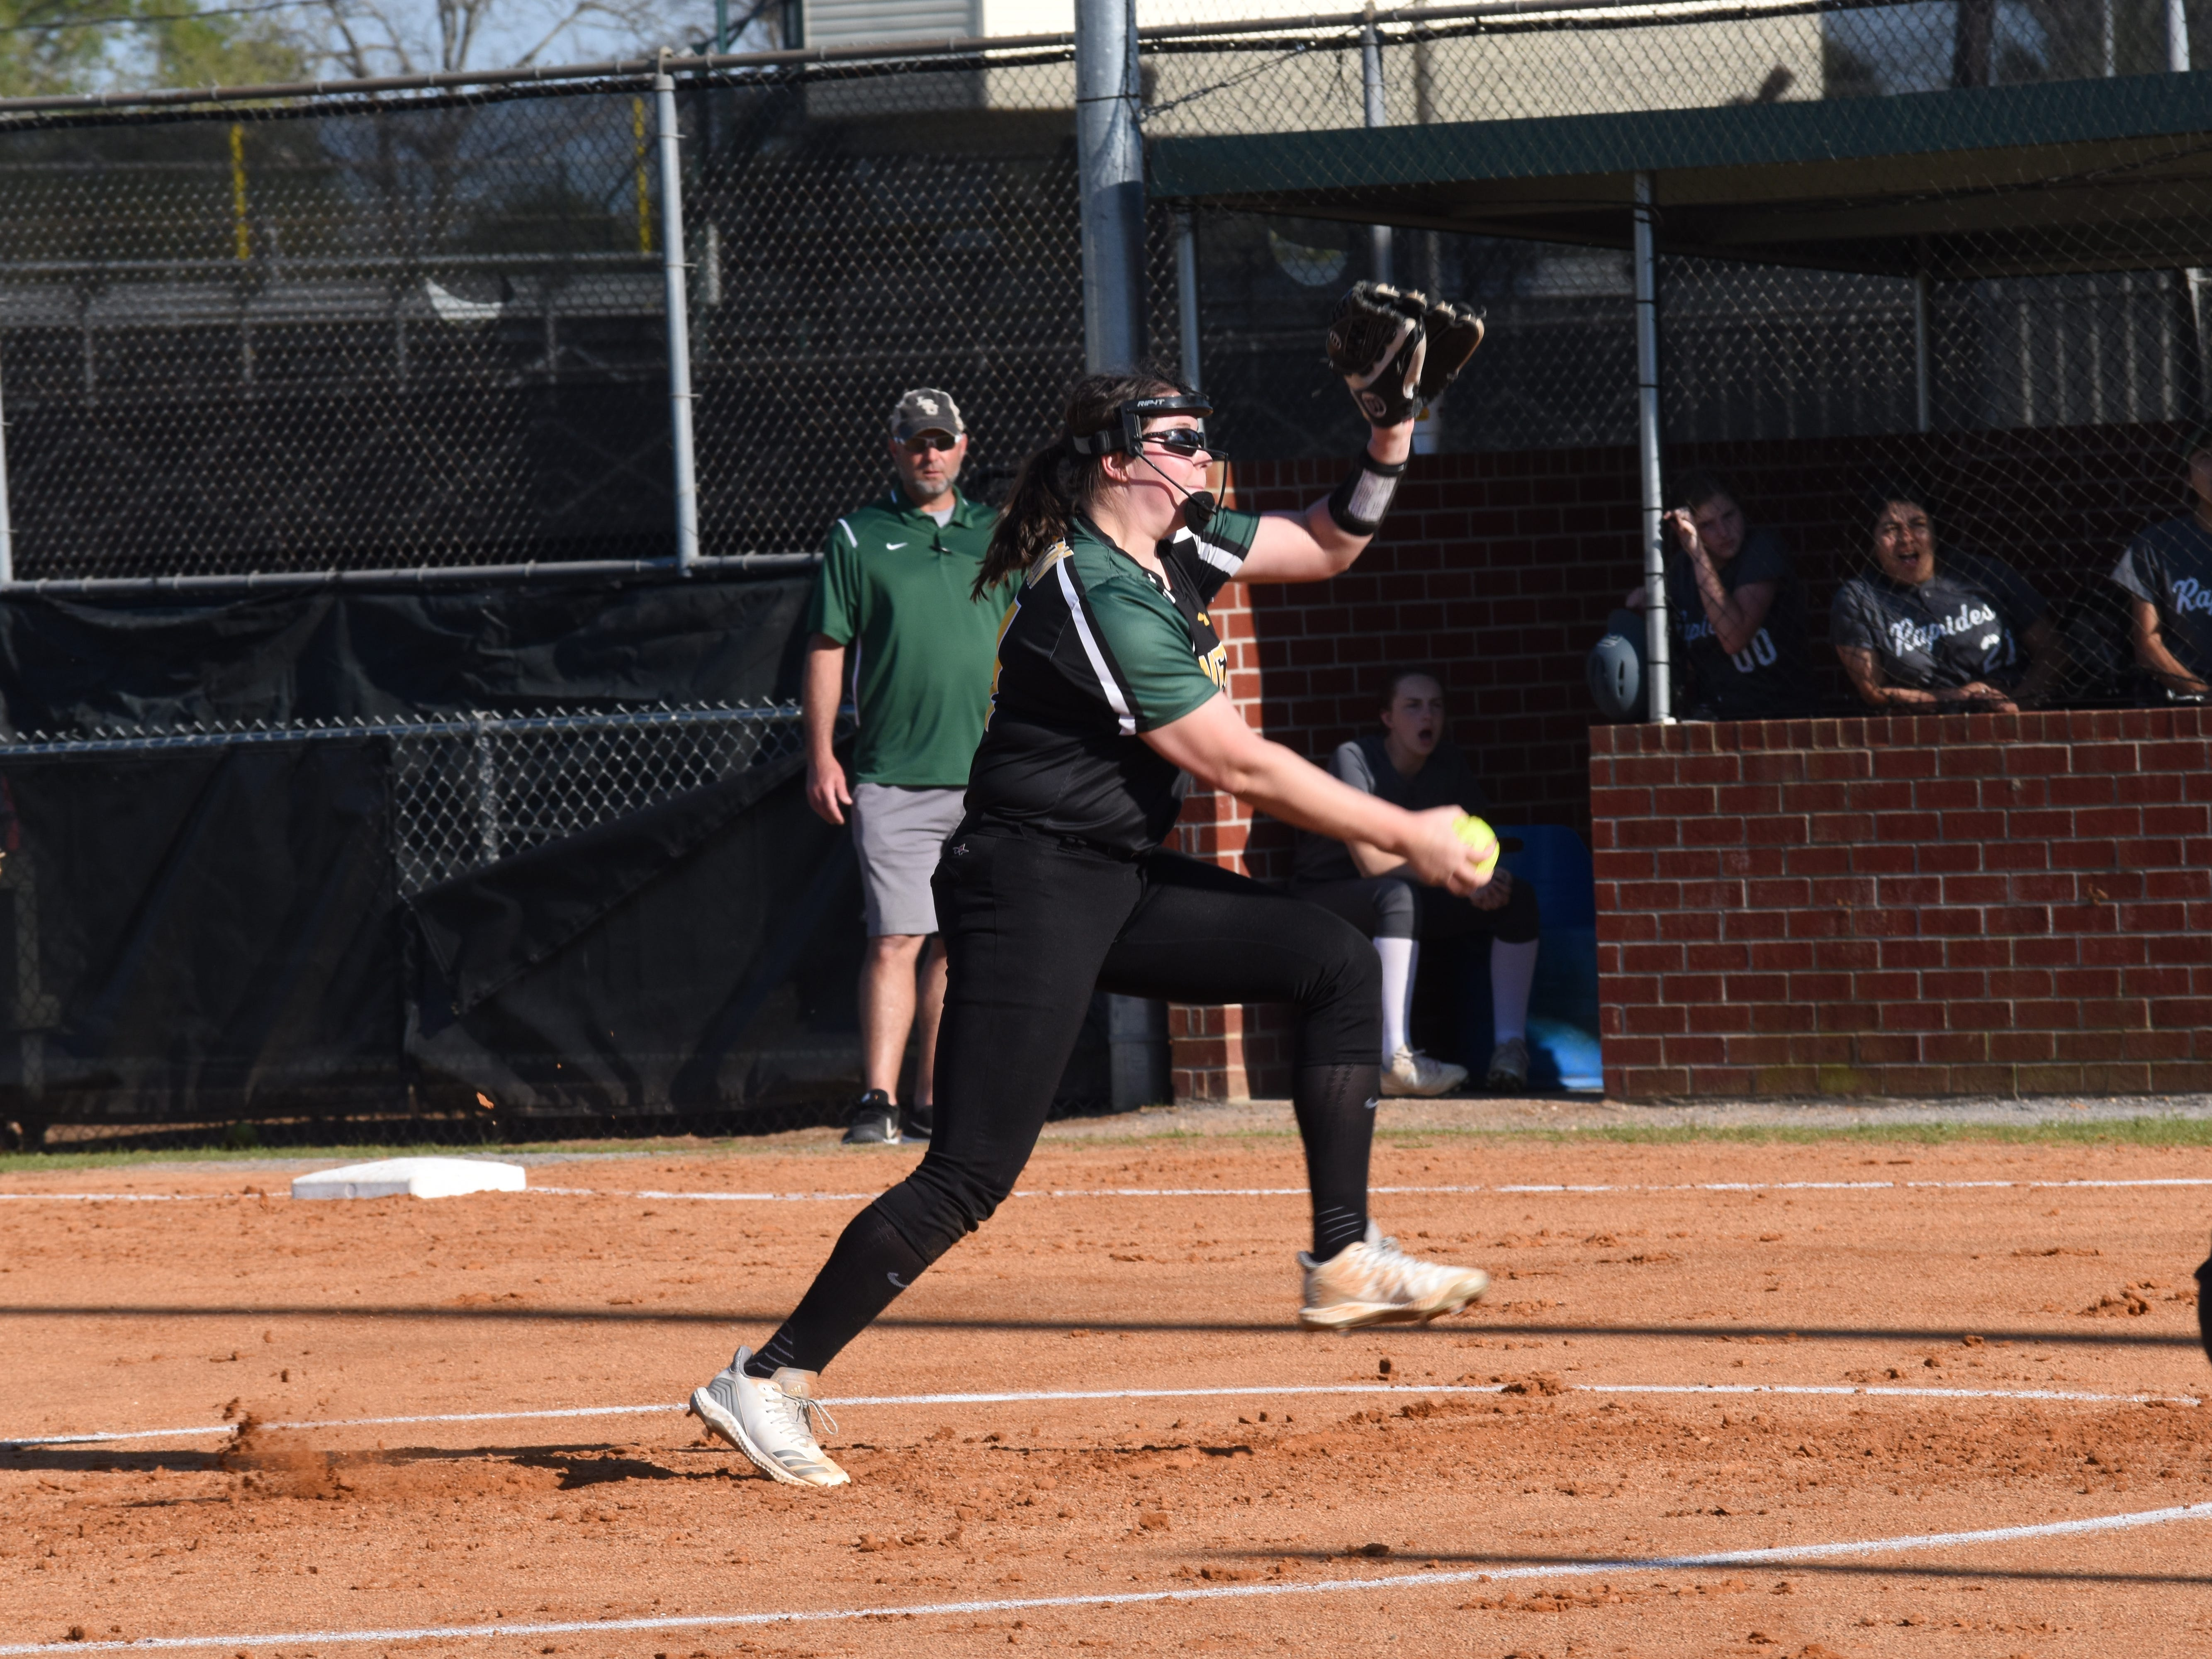 Holy Savior Menard's Olivia Johnson hurls a pitch against Rapides High School Tuesday, March 26, 2019. Menard won 3-1.